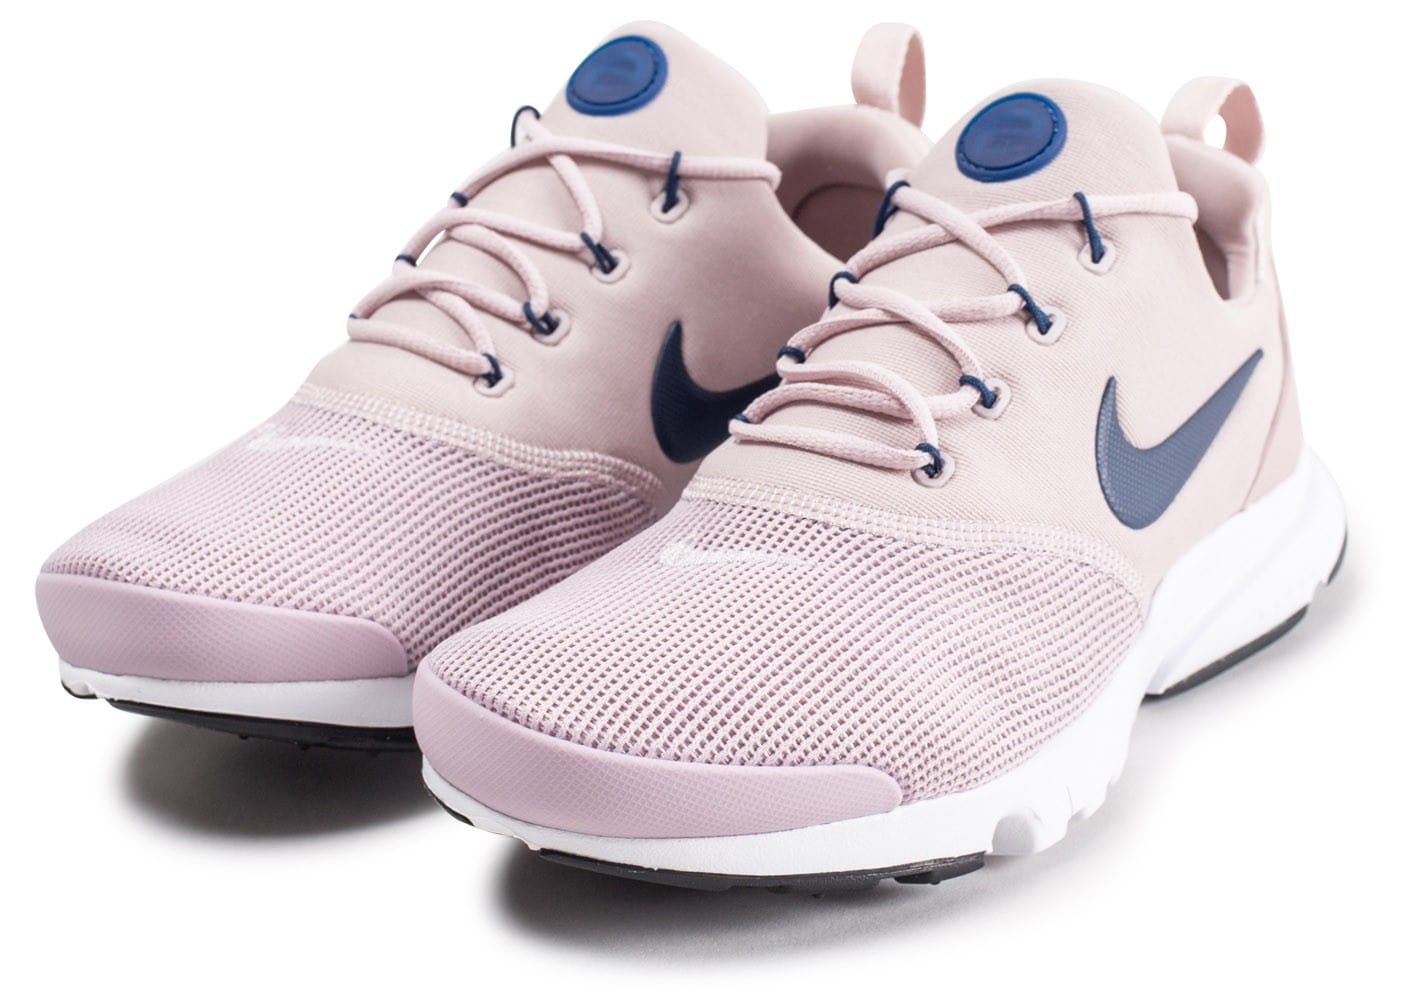 d3cc22caa3ab ... Chaussures Nike Presto Fly junior rose vue intérieure ...